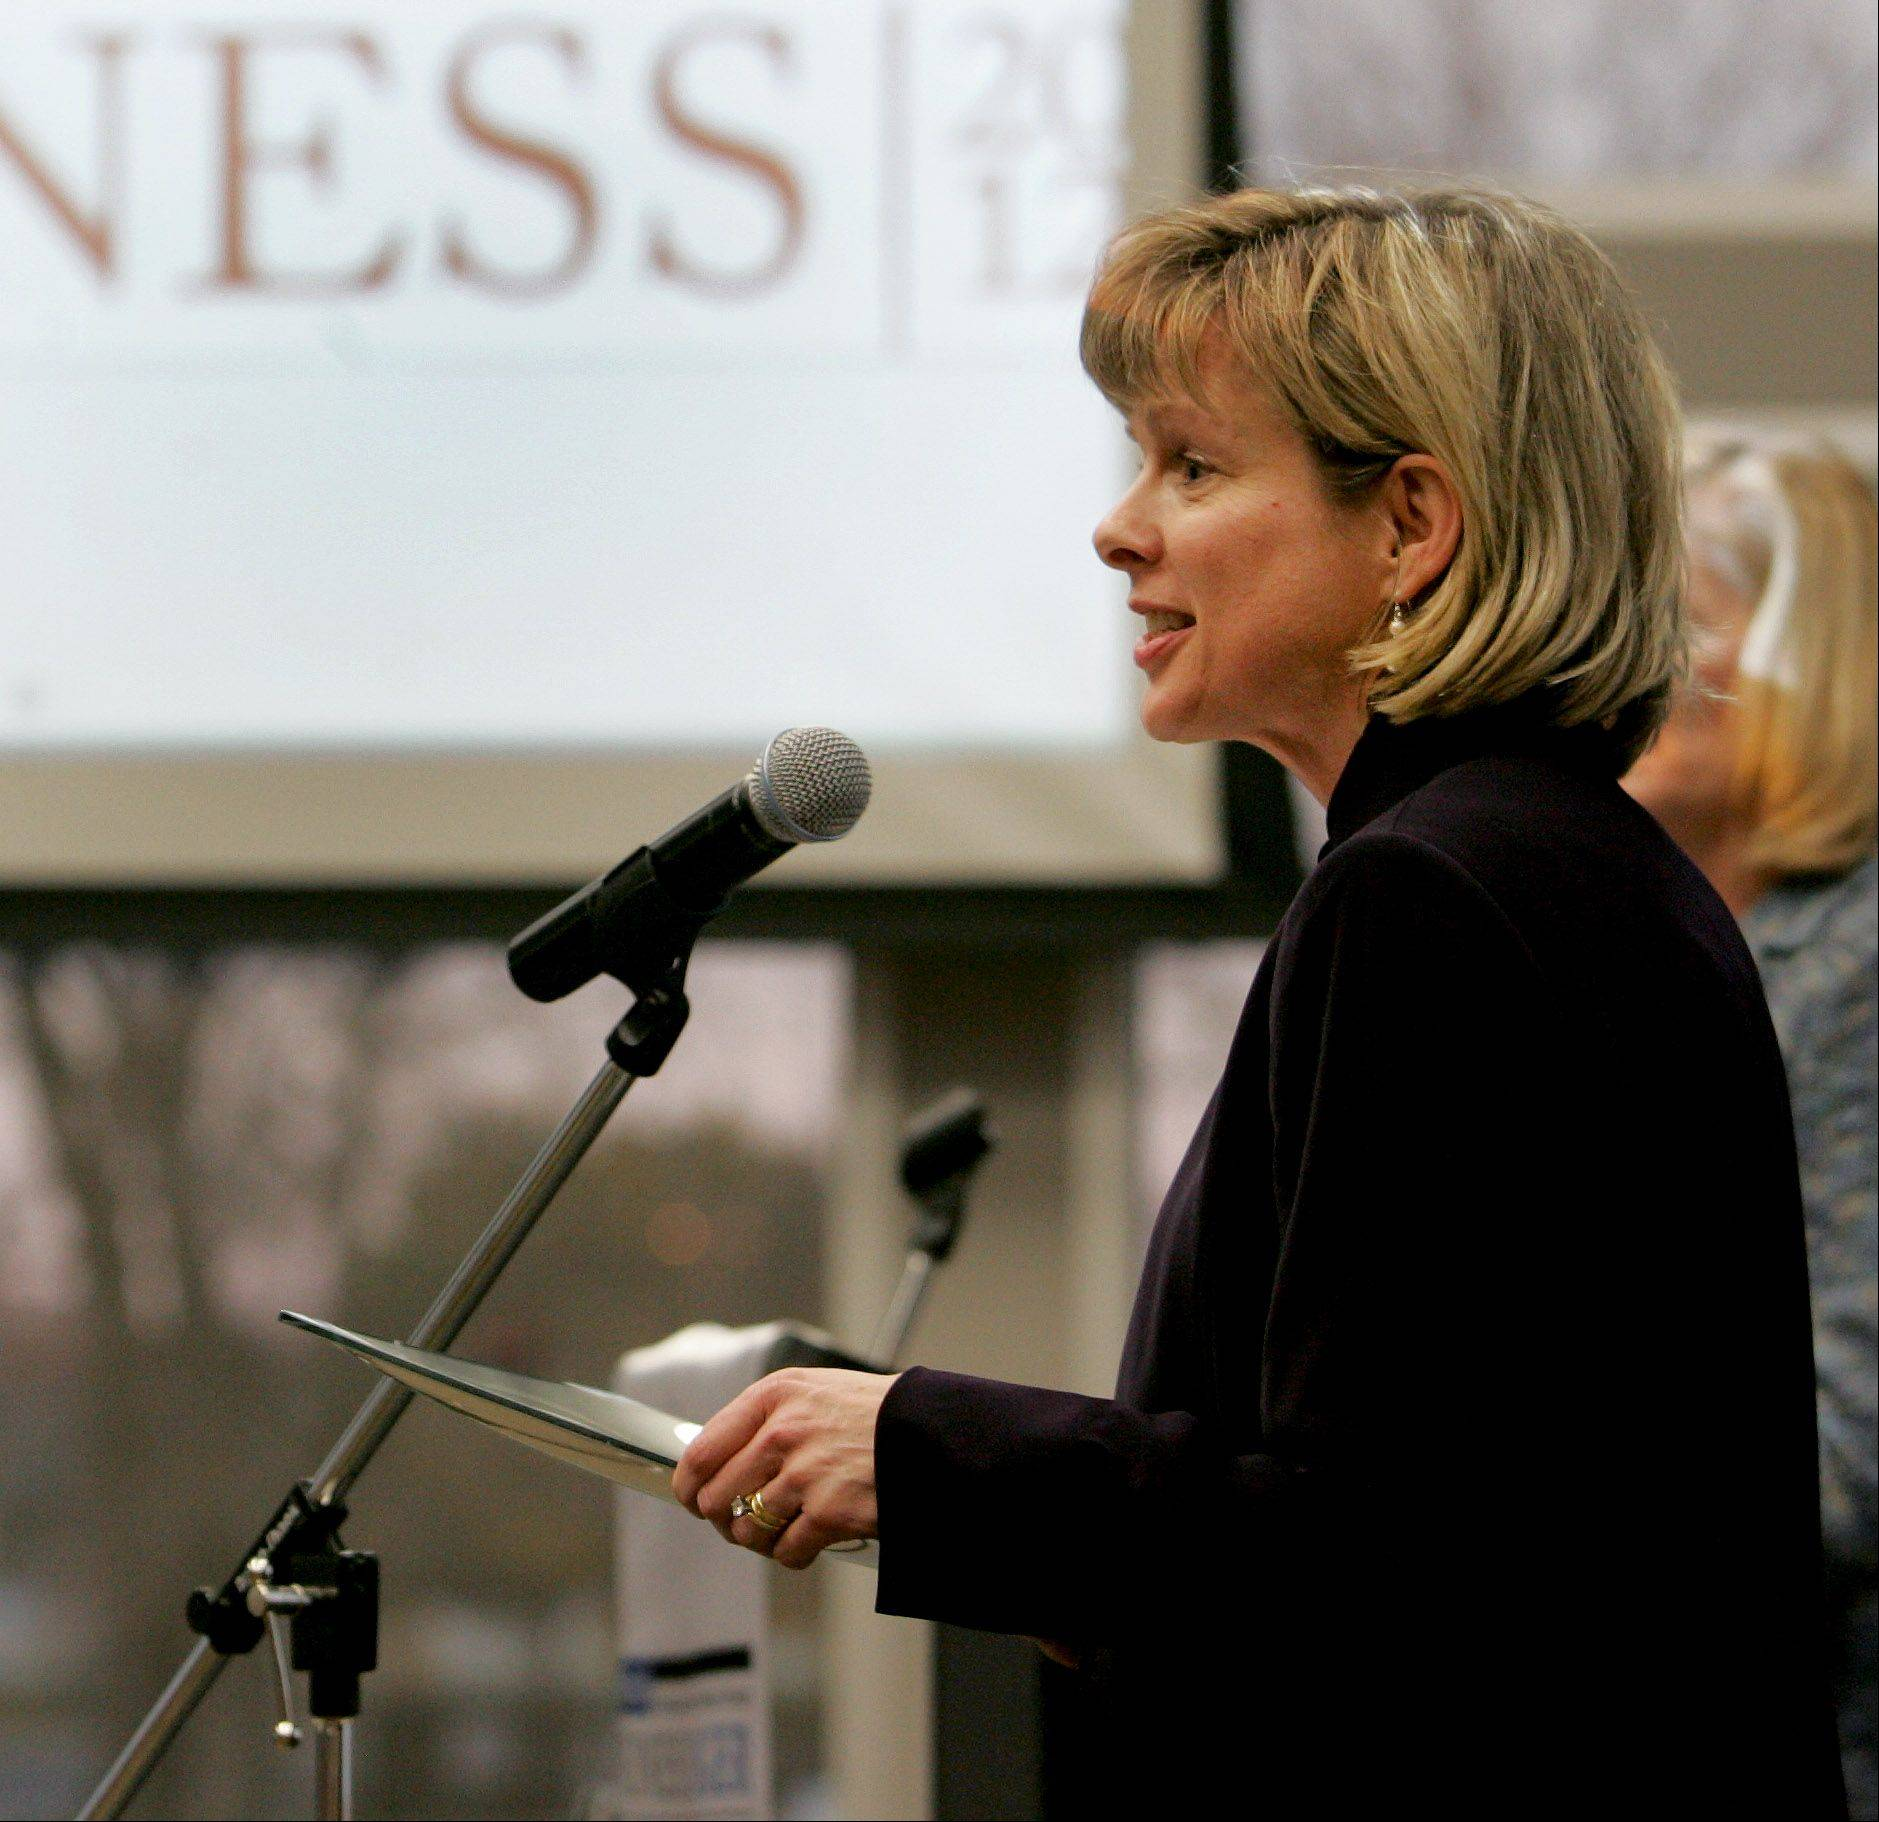 Bev Horne/bhorne@dailyherald.comKimberly Coogan, founder and partner, Bellock & Coogan Ltd., accepts her Influential Women in Business award at Northern Illinois University Naperville campus on Monday.